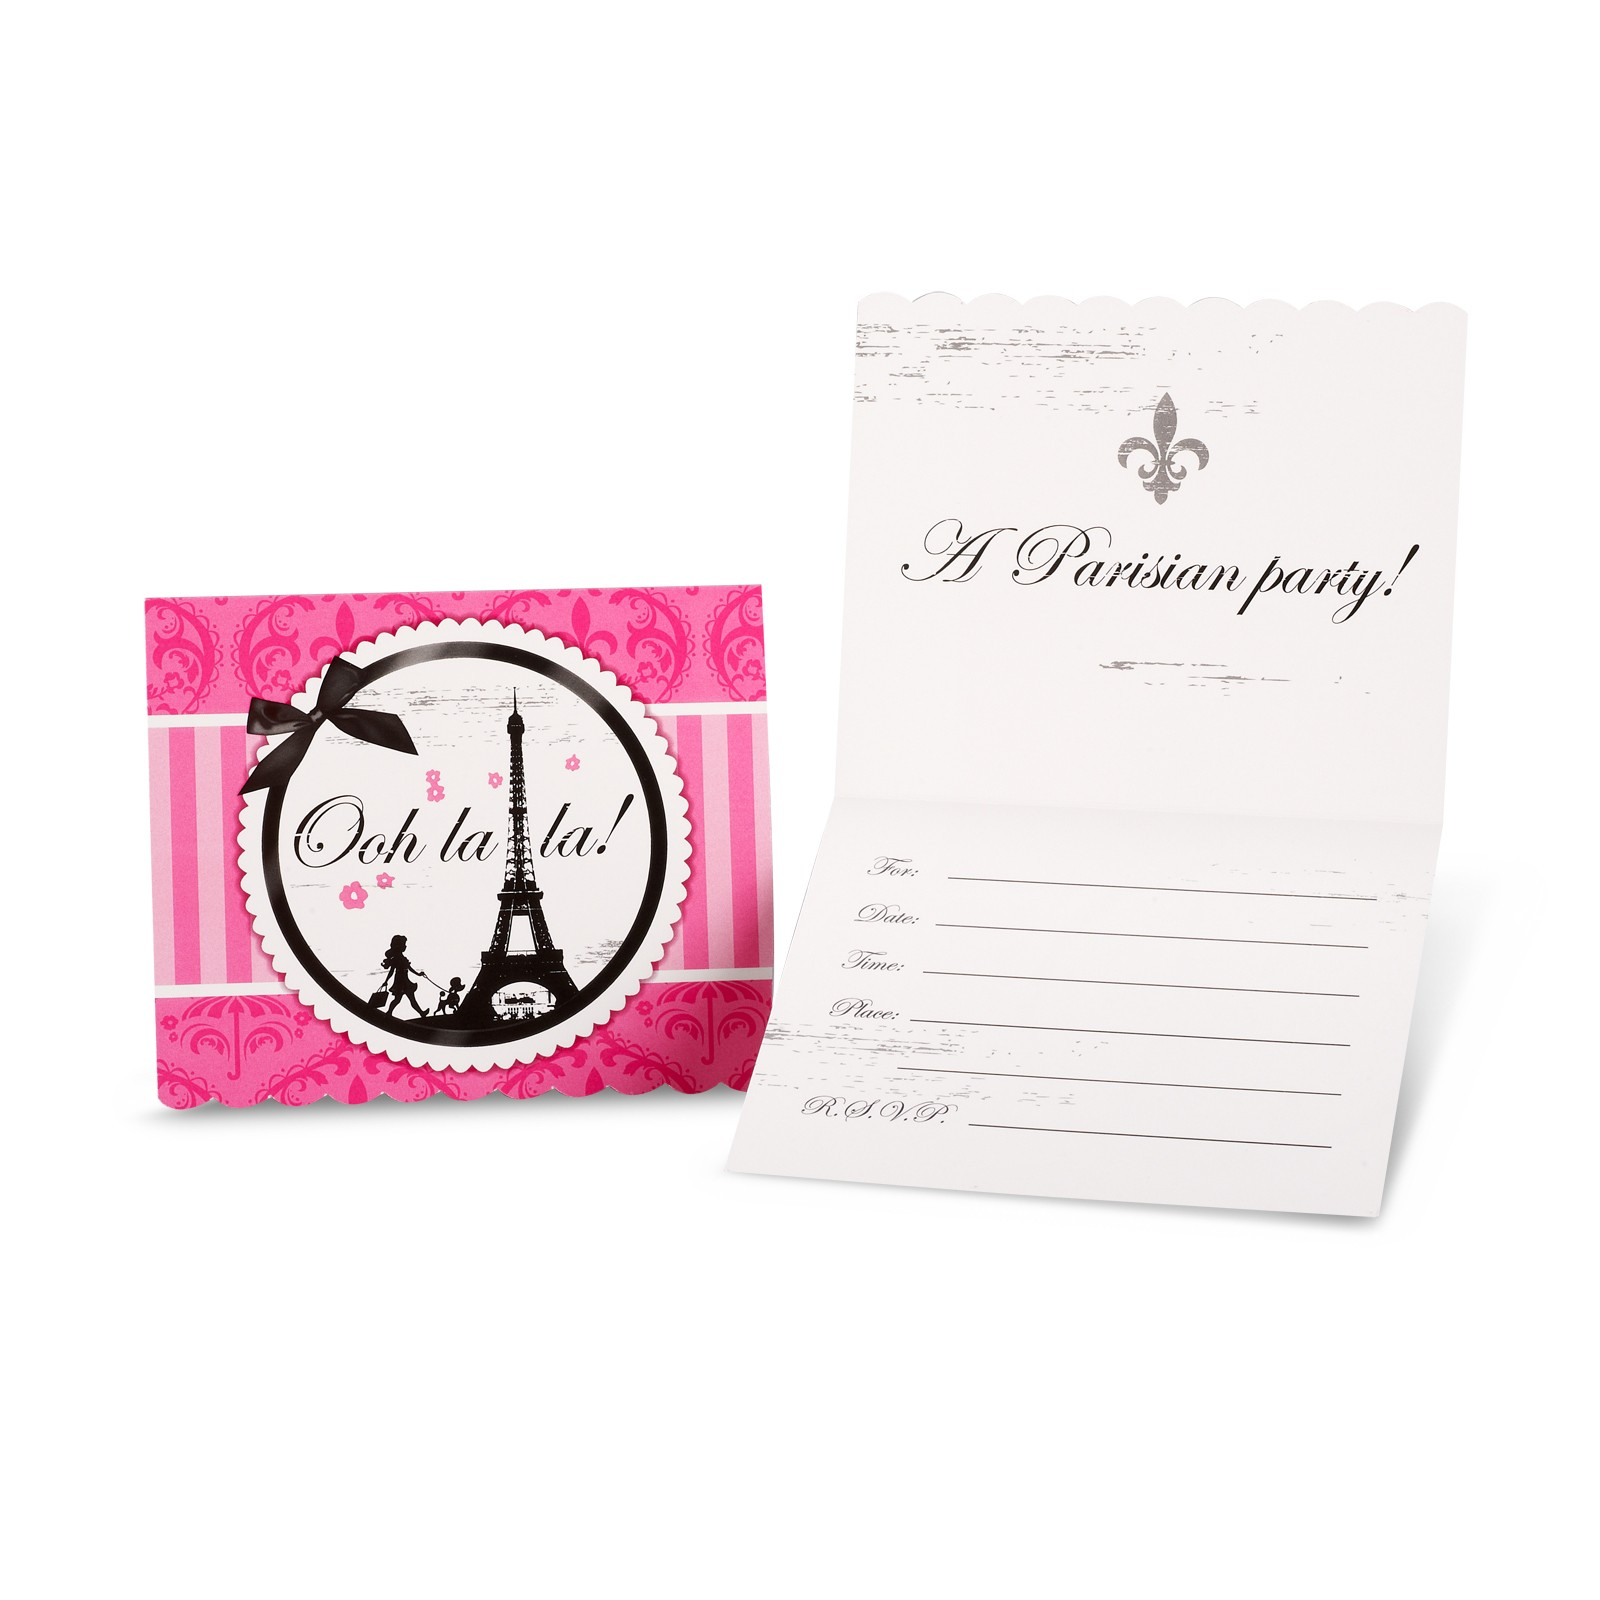 Bubble Birthday Invitations is beautiful invitations layout